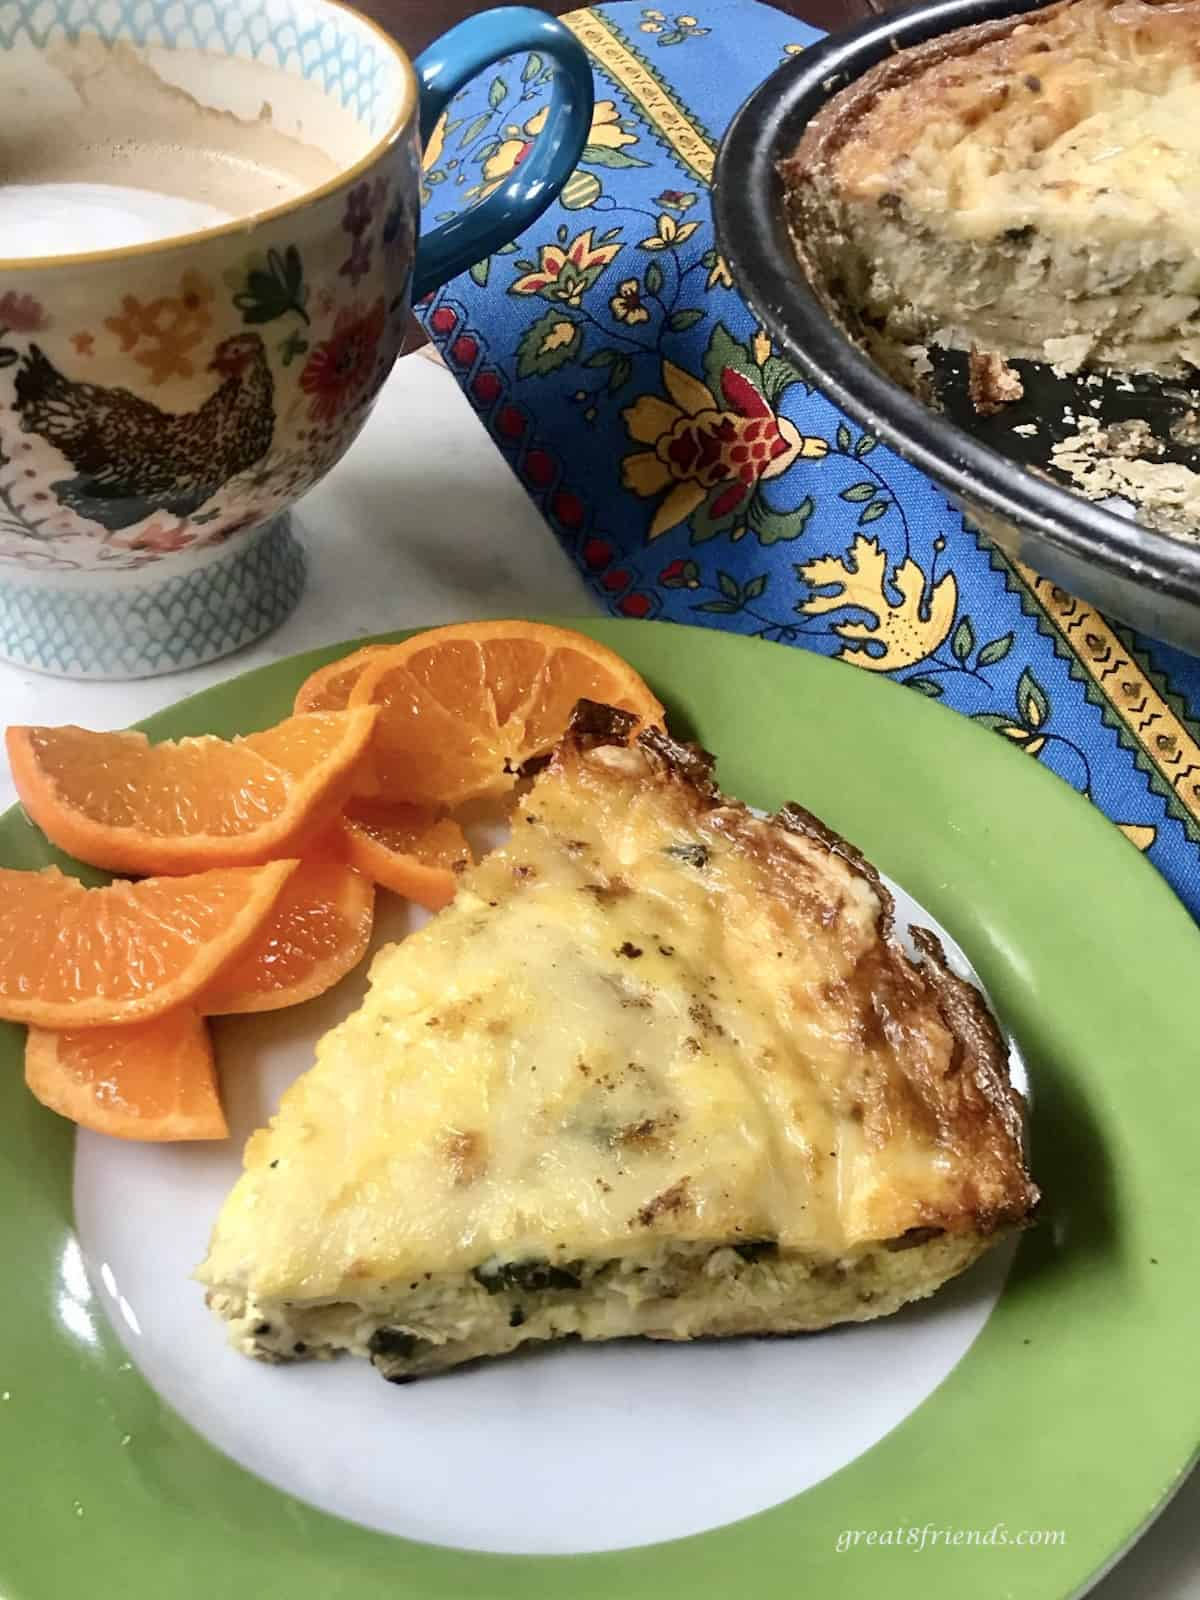 A slice of quiche lorraine on a white and green plate with orange slices and a cappuccino on the side.